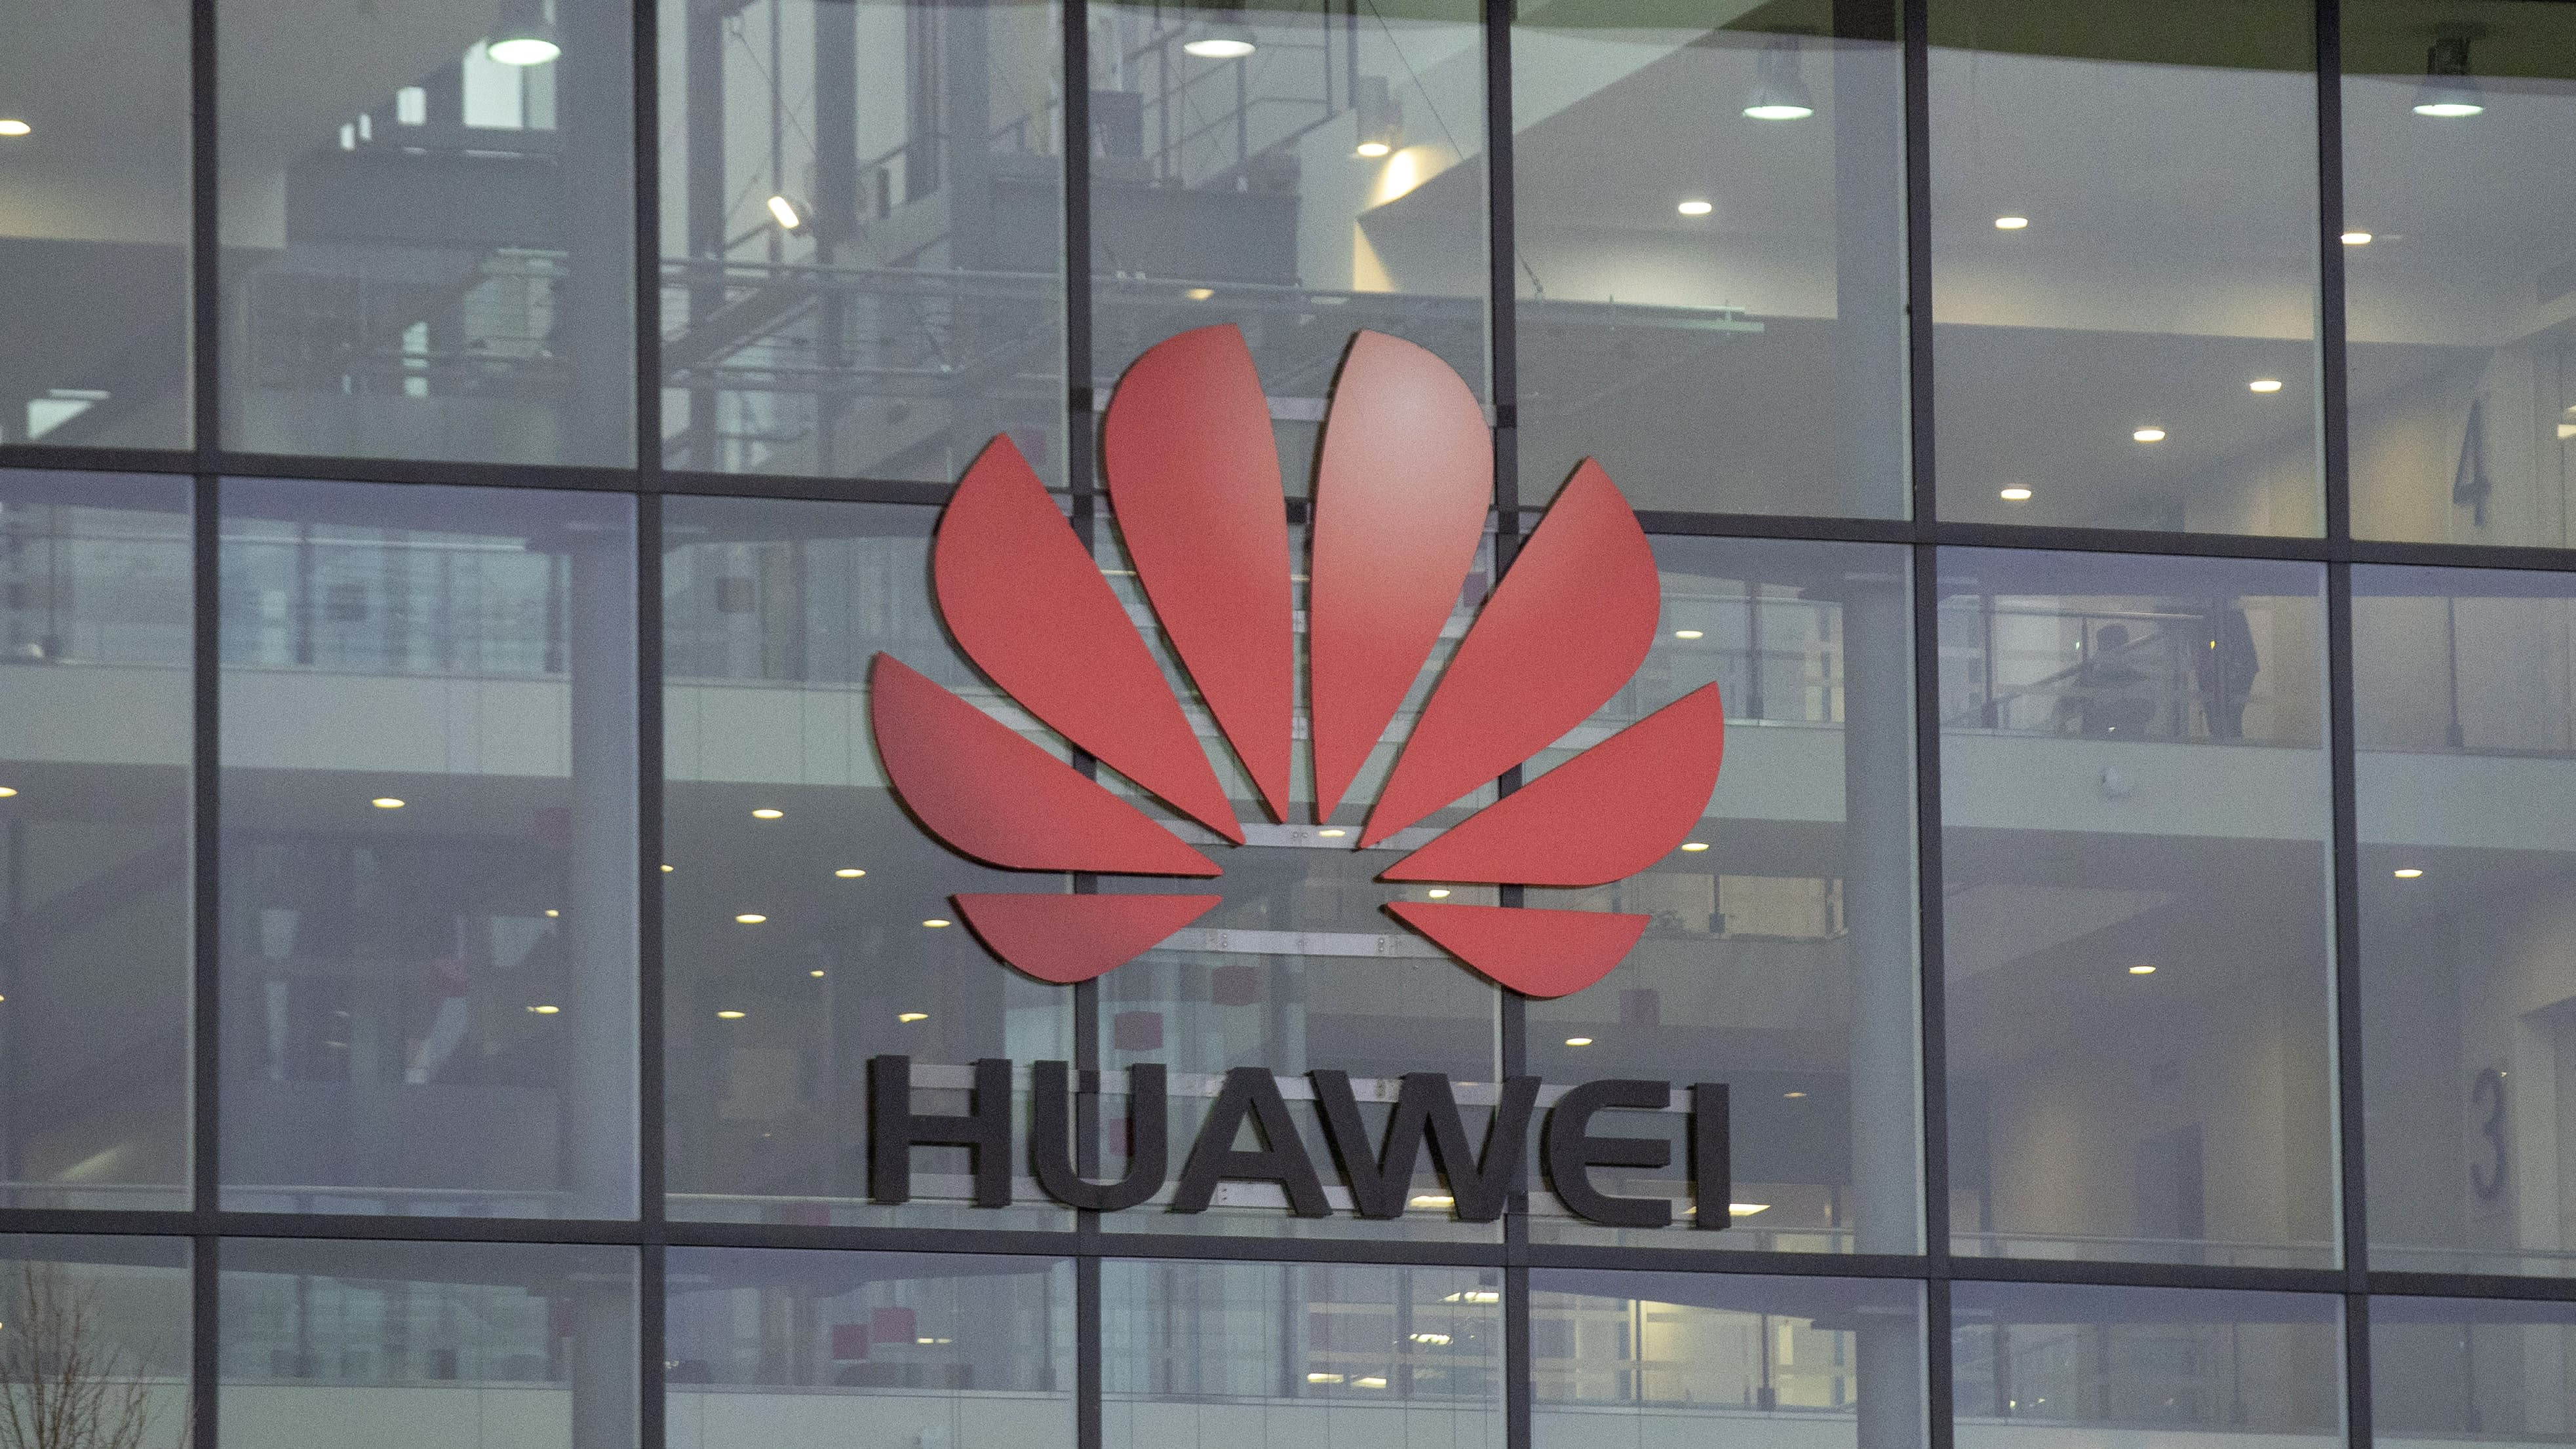 BT boss warns it would take seven years to remove Huawei from all UK infrastructure